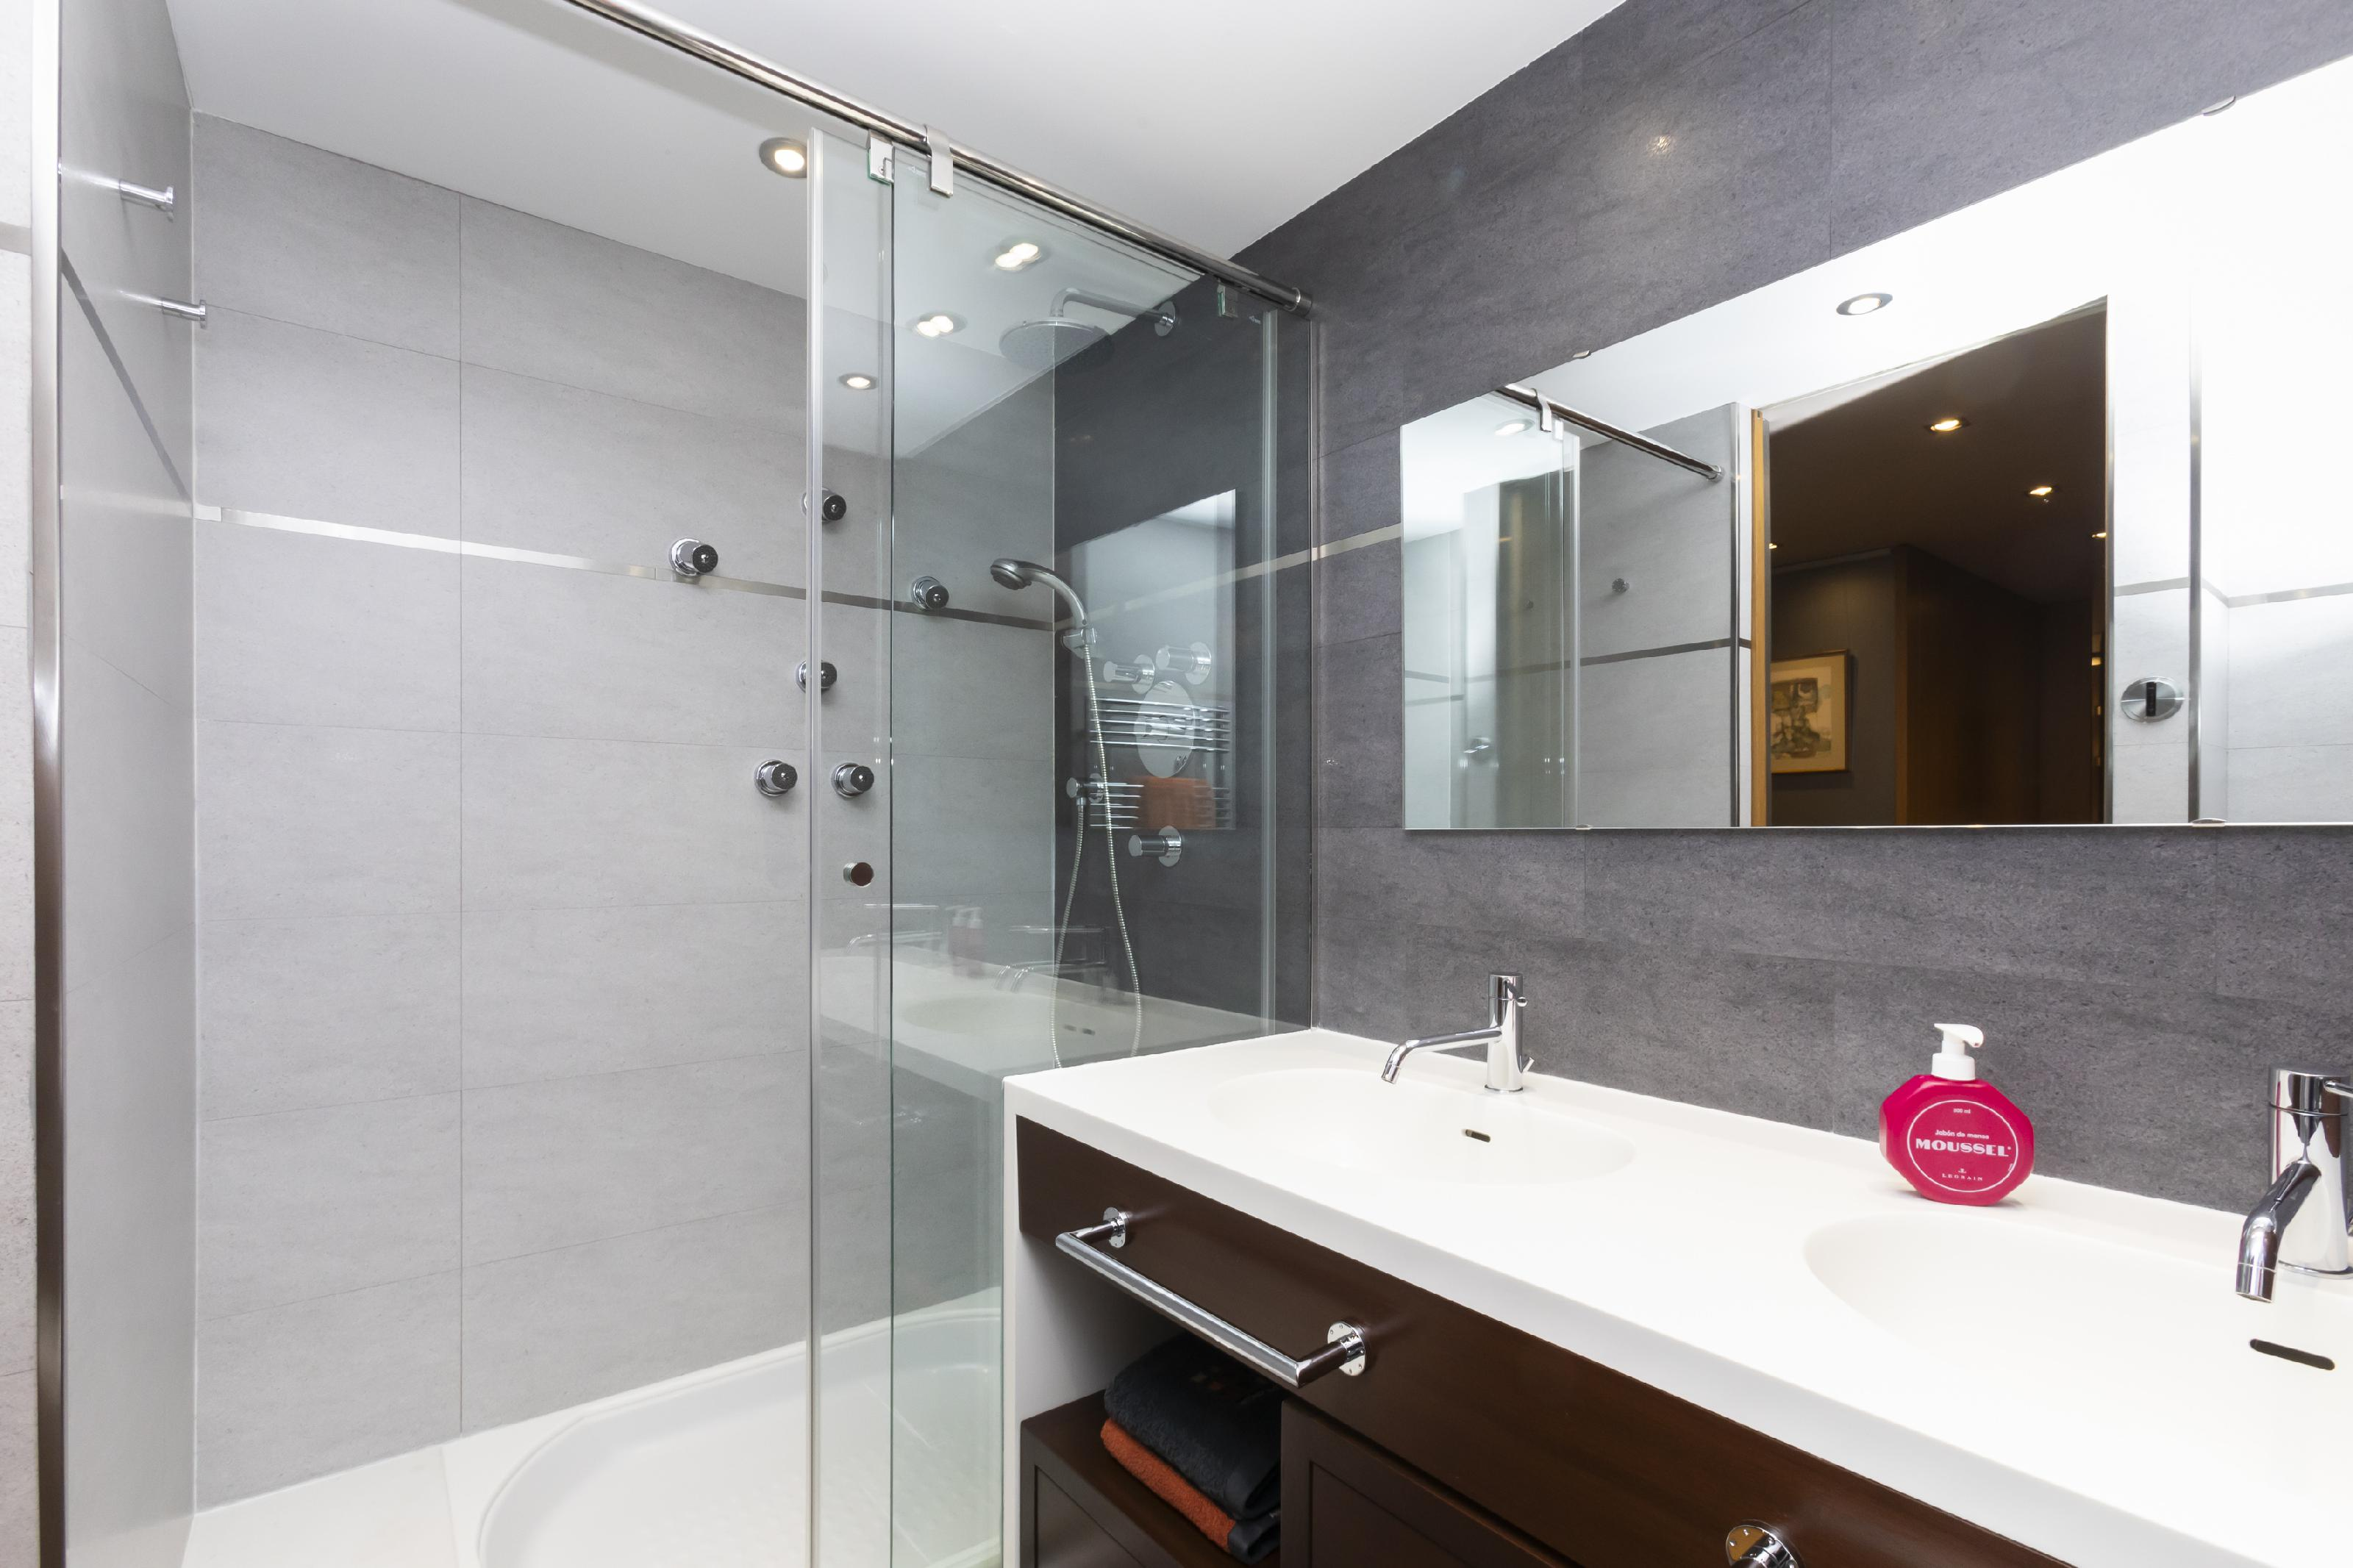 247020 Flat for sale in Les Corts, Les Corts 30